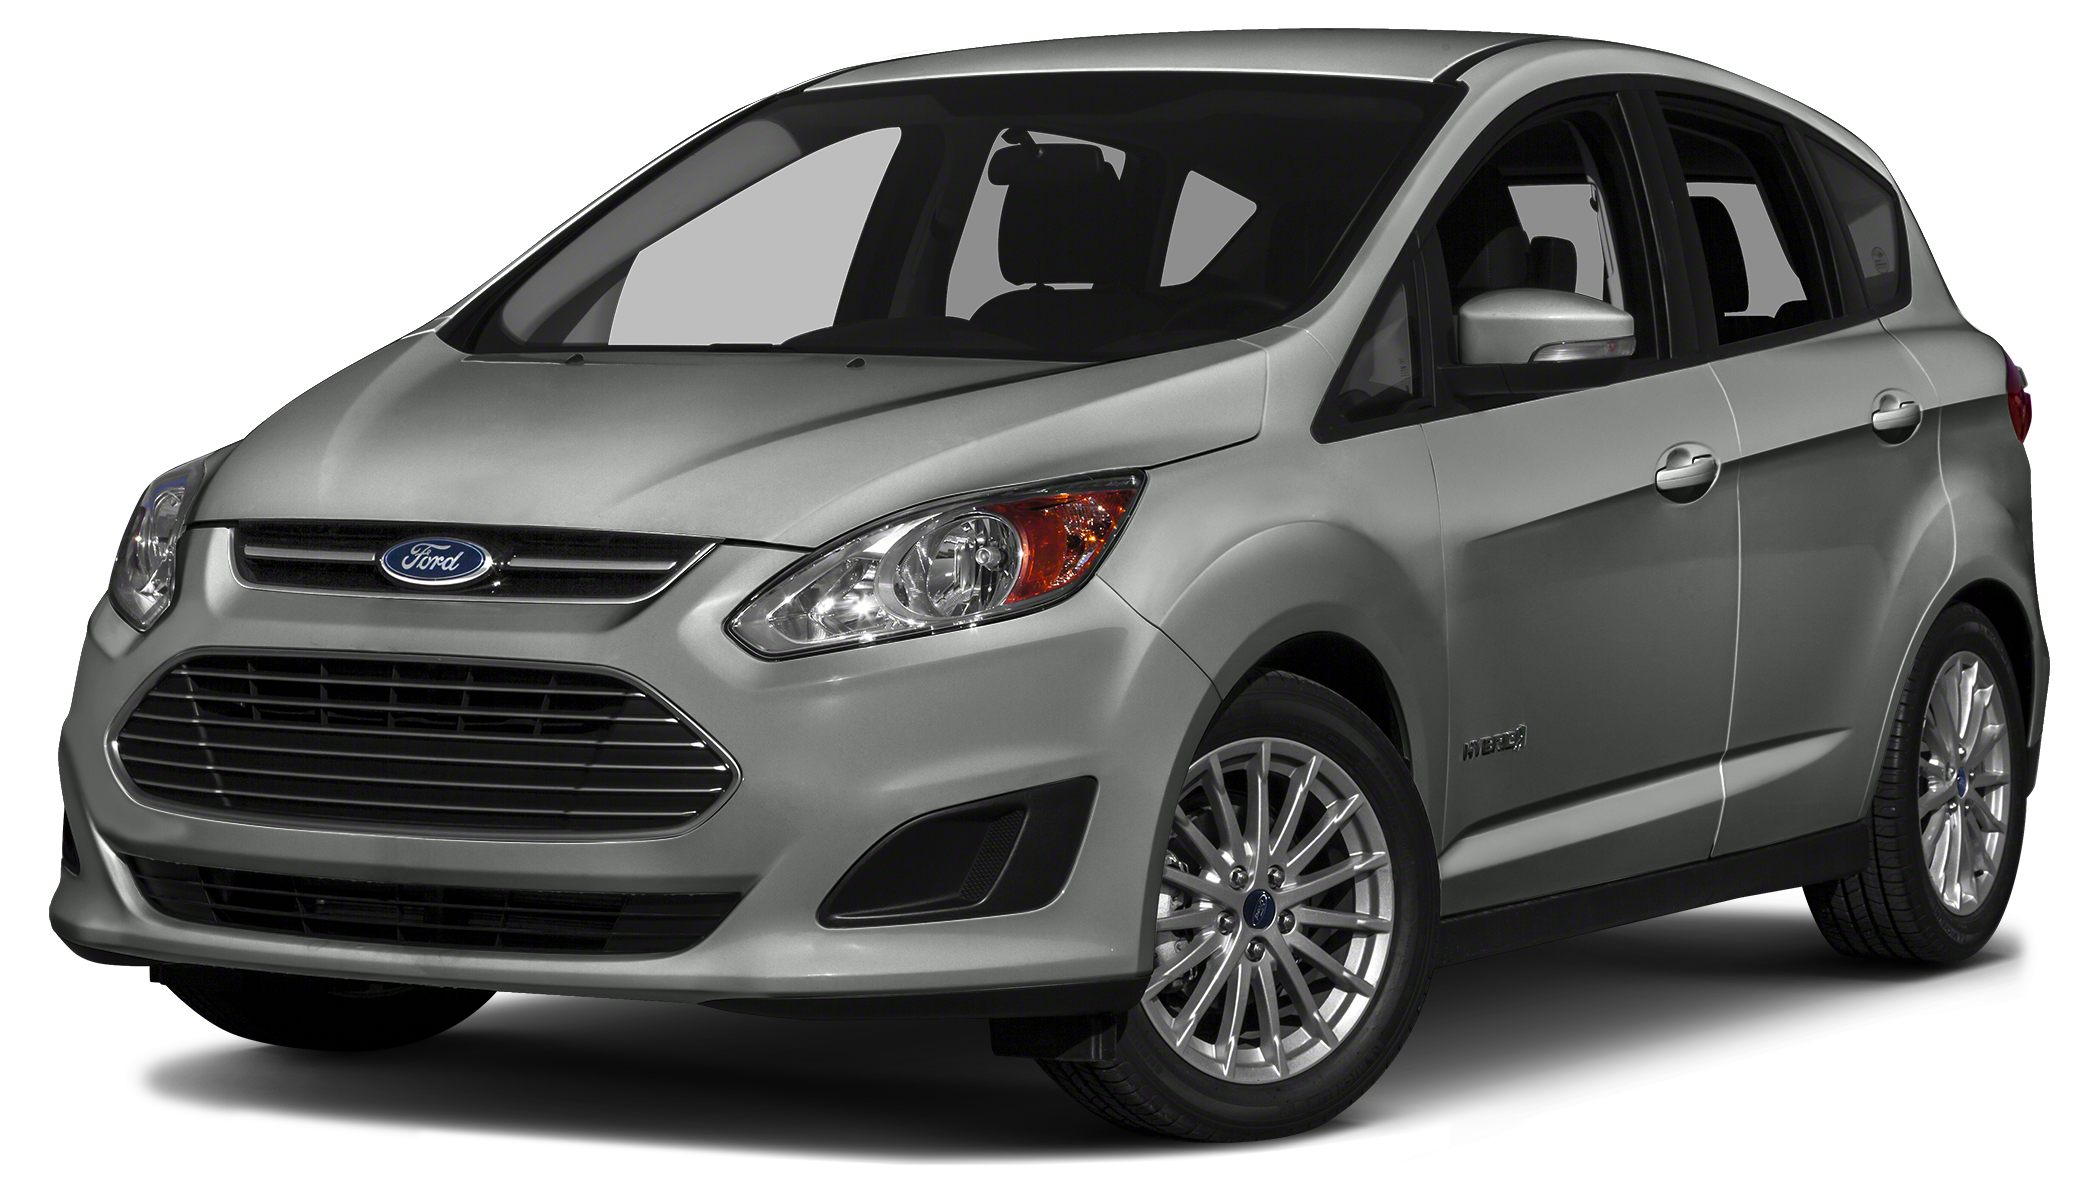 2014 Ford C-Max Hybrid SE Miles 77Color Ice Storm Metallic Stock F305835 VIN 1FADP5AU8EL5164